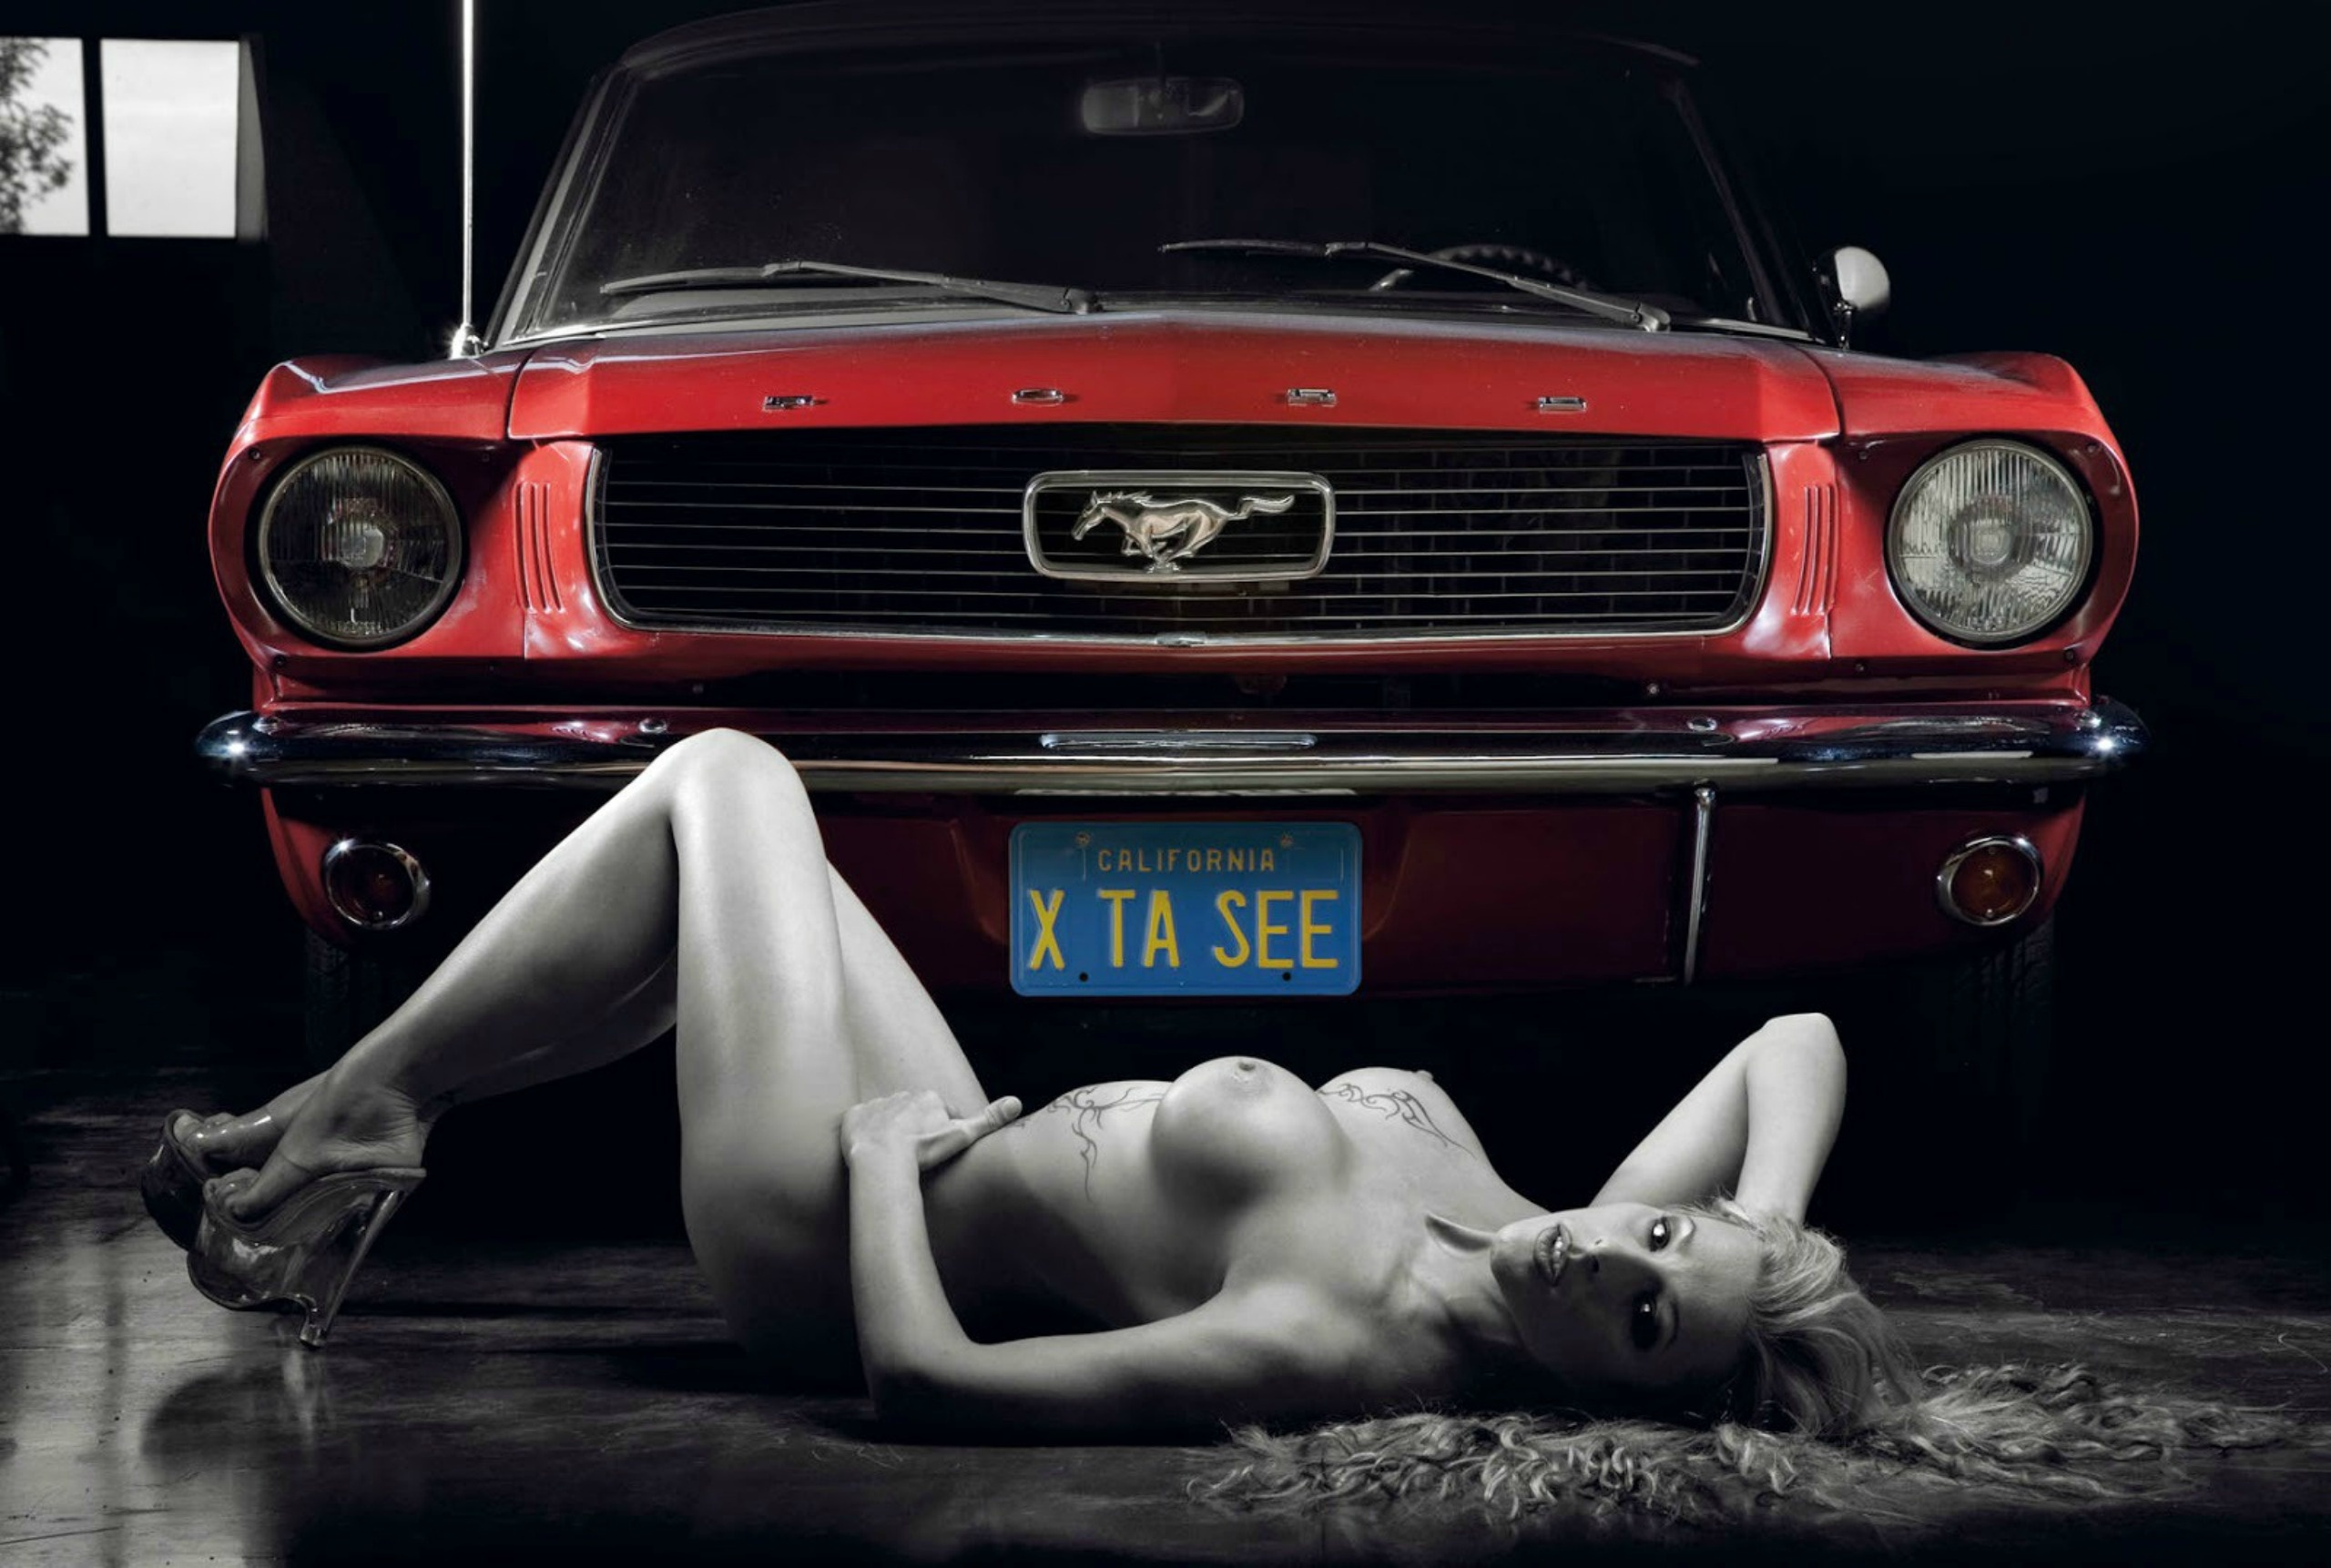 Advise Mustangs and nude models